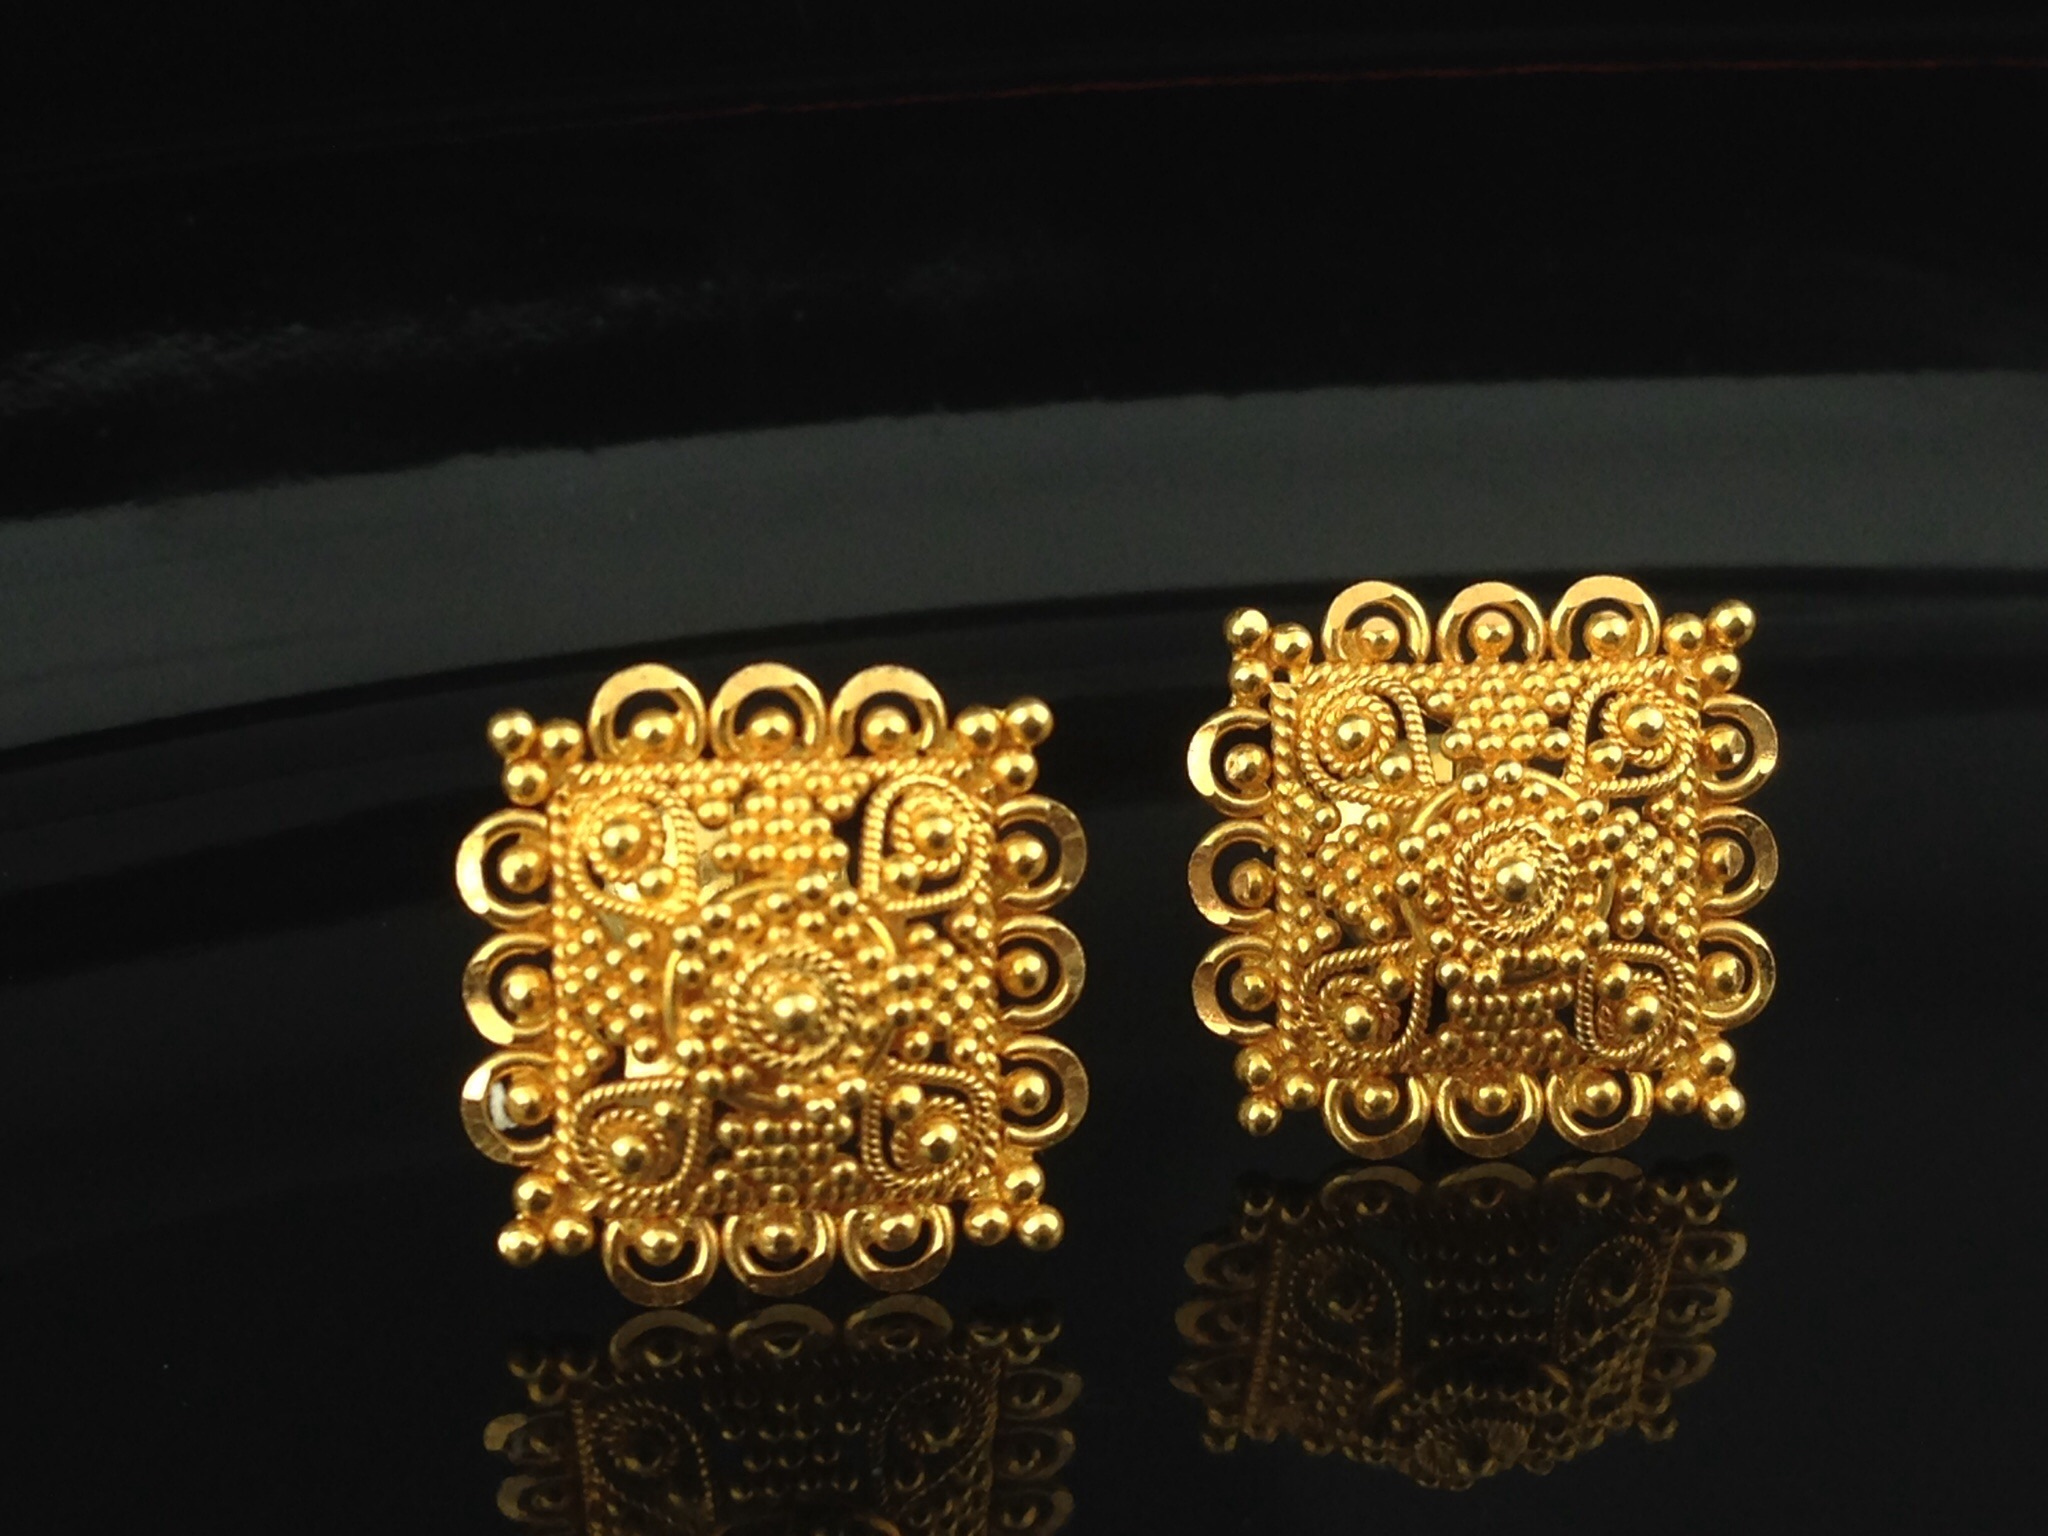 ee gold detail dr sgs jewellery products earrings spec